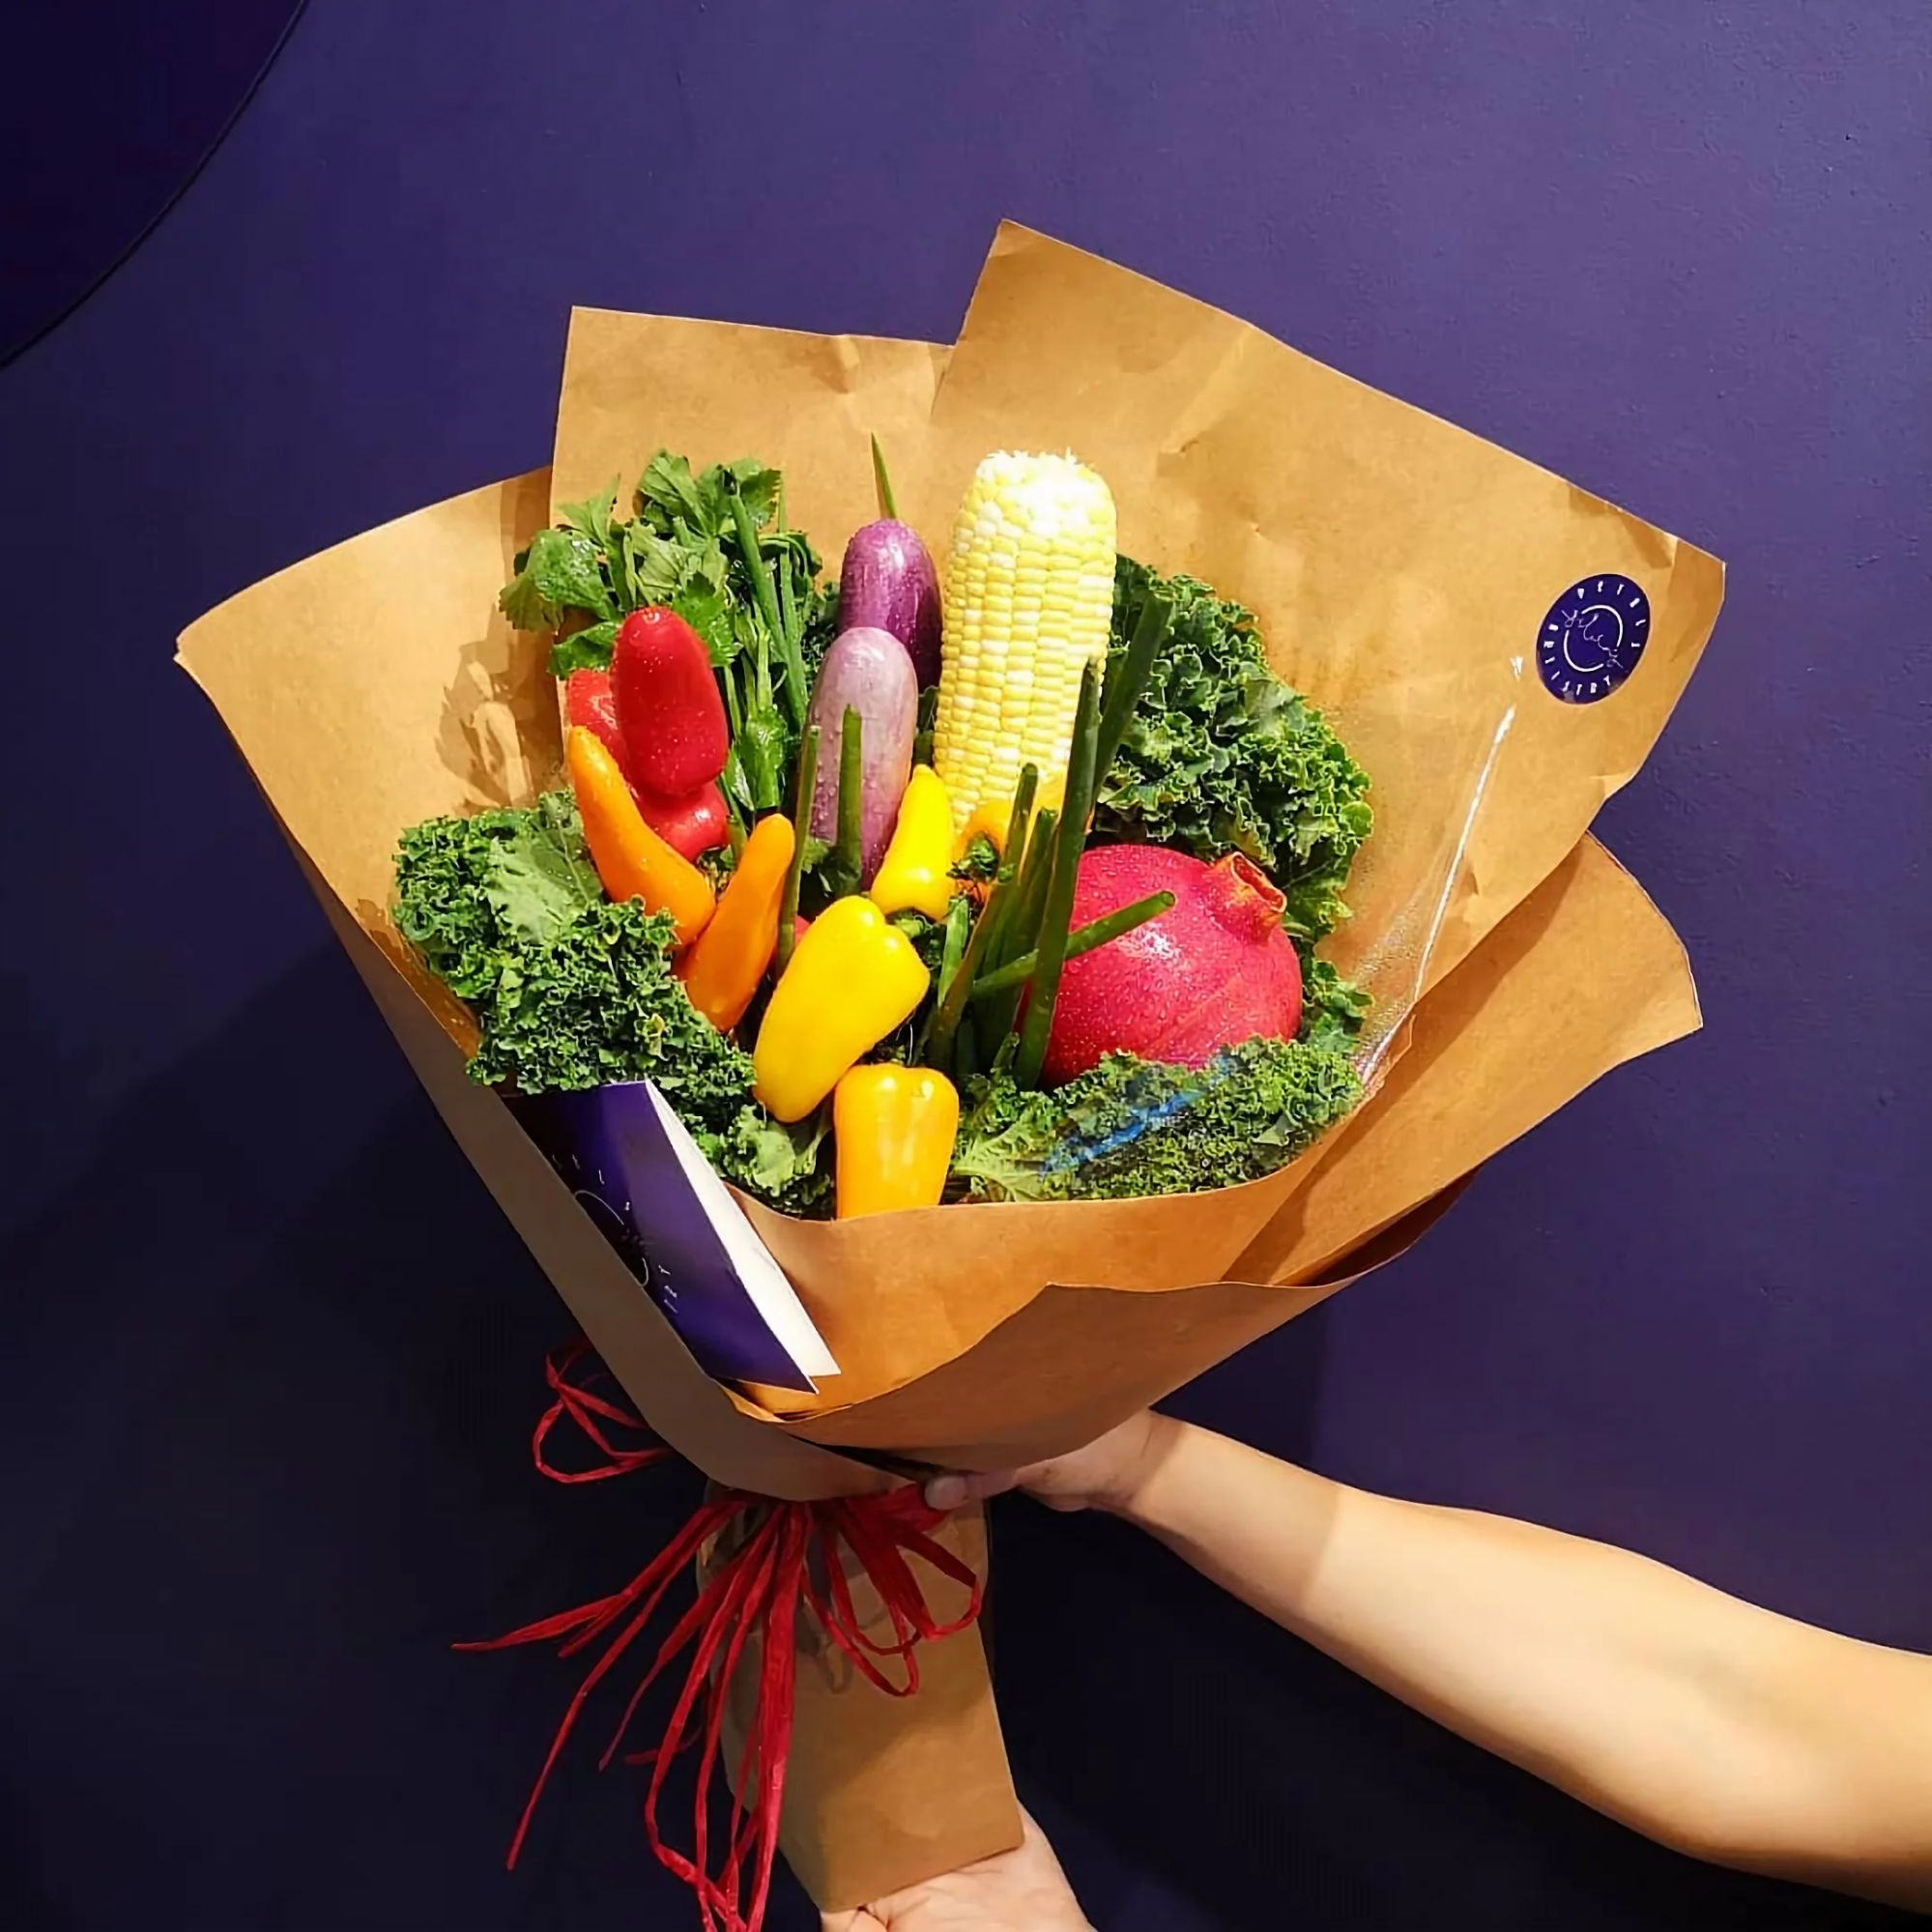 10 Edible Bouquets For Valentine S Day 2020 To Gift Your Foodie Girlfriend